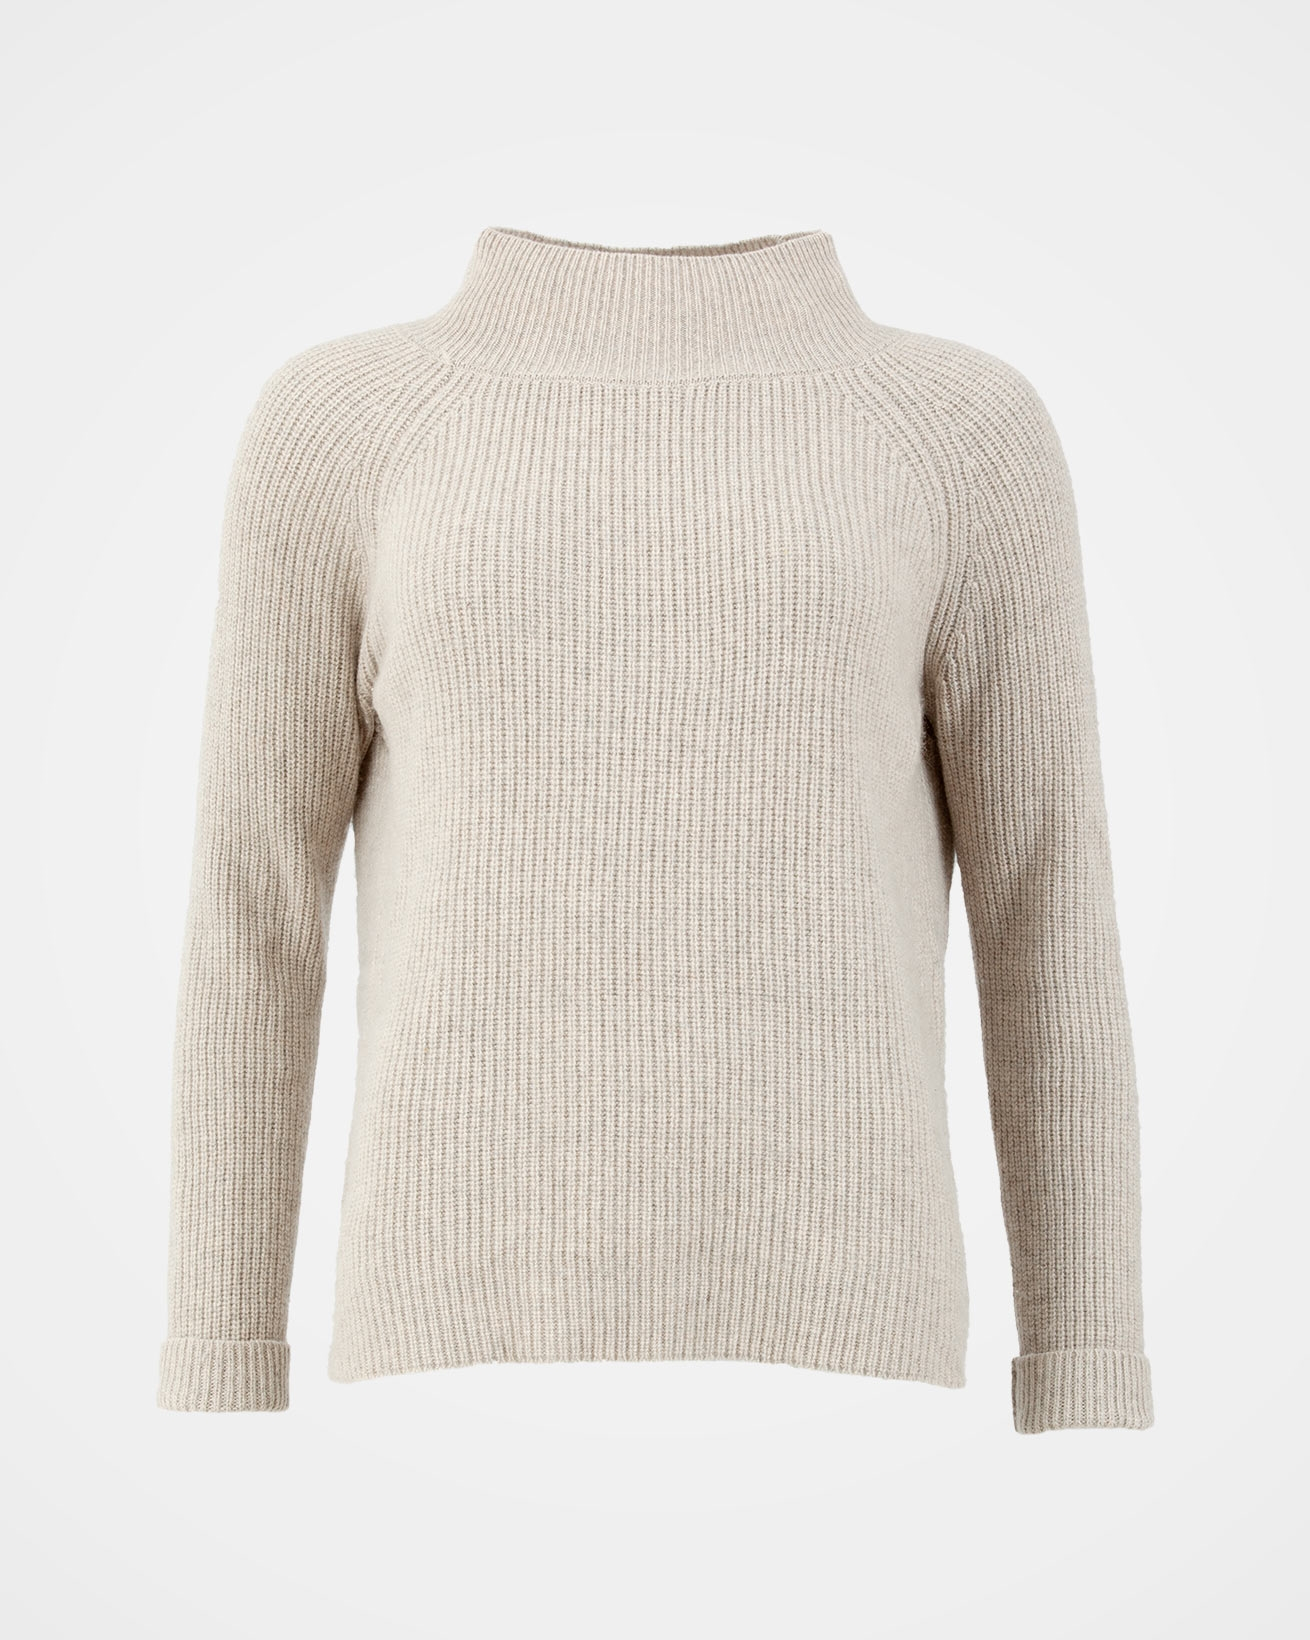 7608_eco-luxe-cashmere-jumper_oatmeal_front.jpg